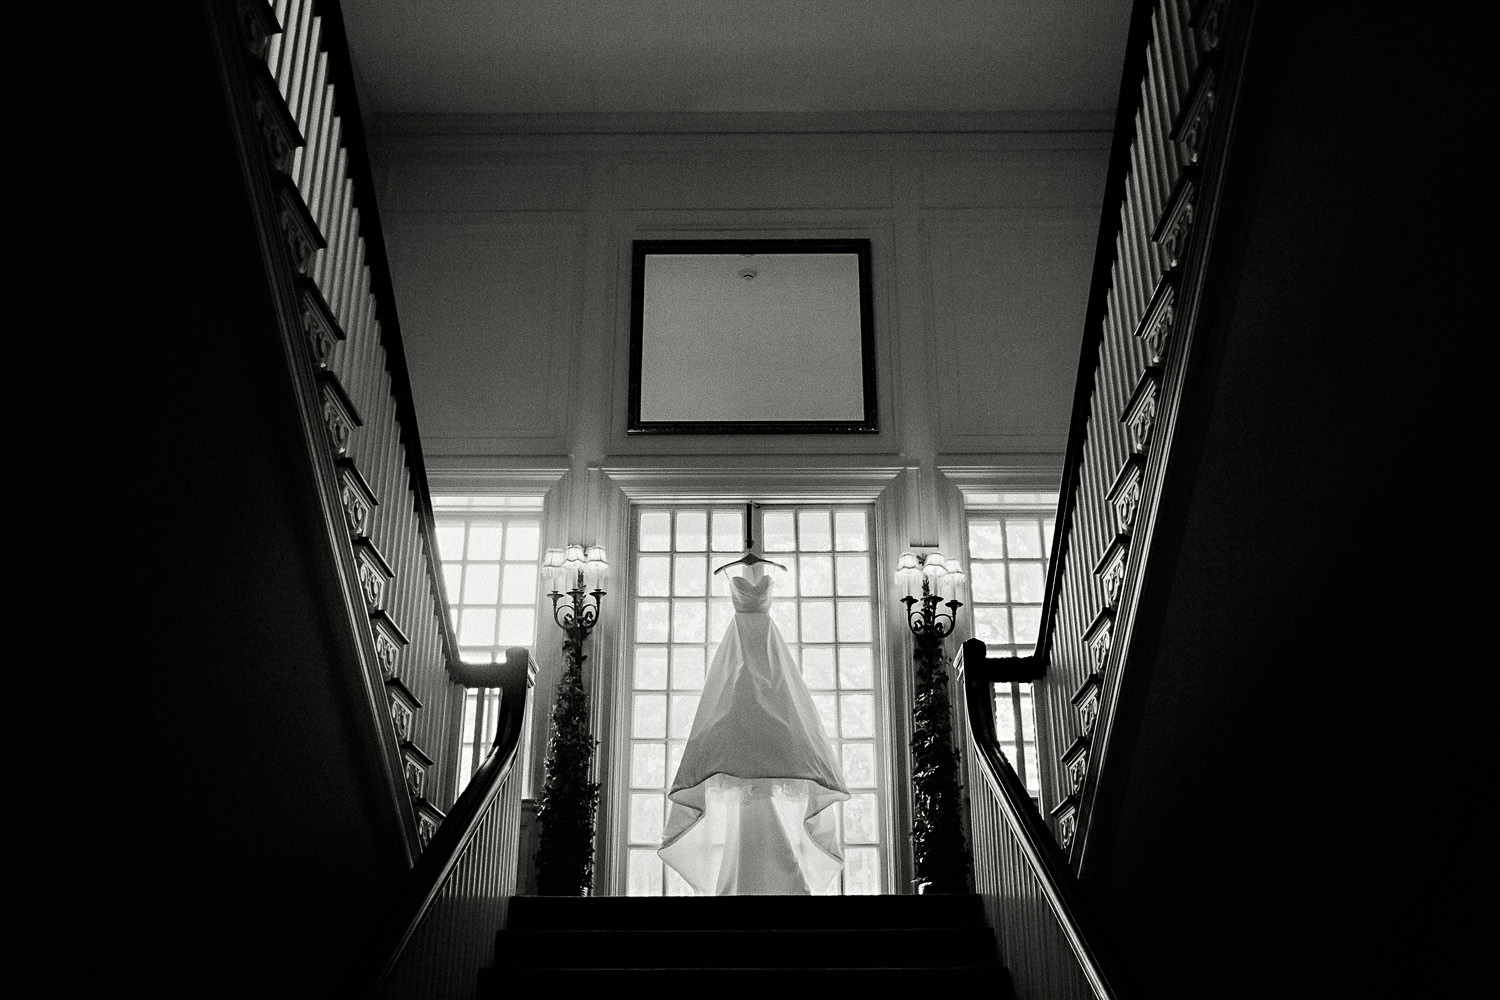 A wedding dress hangs in the window.